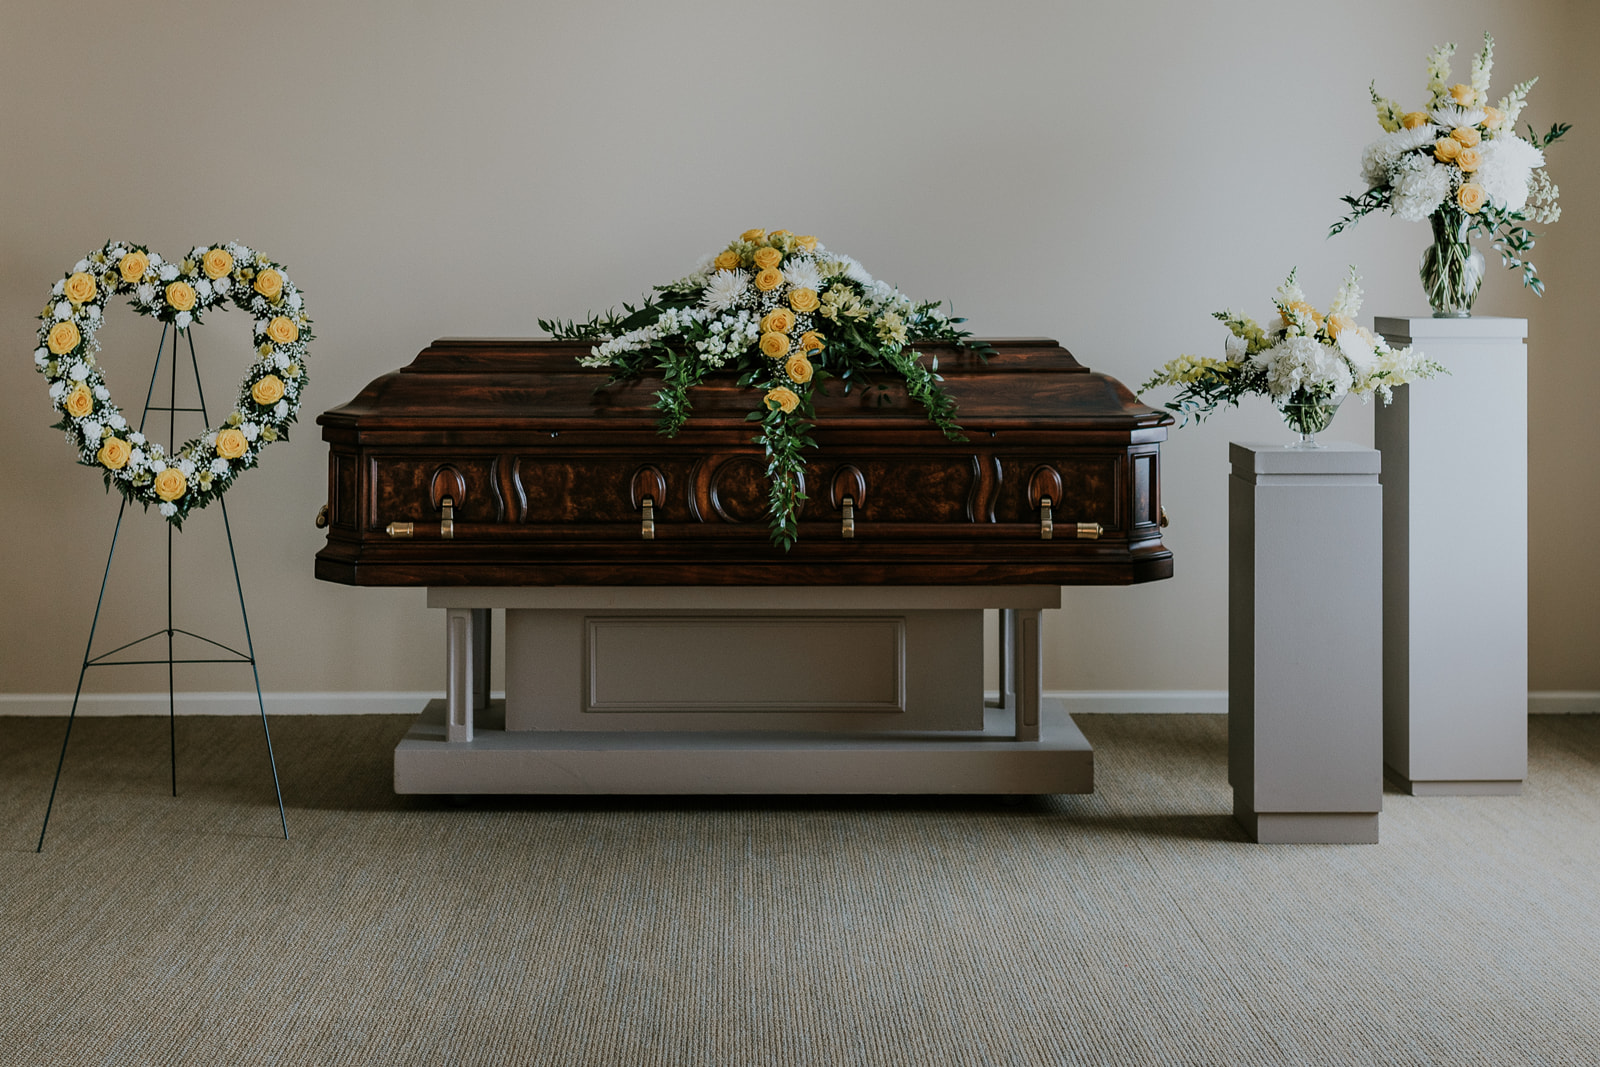 This collection is comprised of five floral pieces: the casket spray, a 24-inch open heart, a compote, vase, and memorial urn arrangement. All of the pieces are designed using yellow roses accented by white flowers such as fugi, hydrangea, and snapdragons. The memorial urn arrangement is constructed in two tiers using three 12-inch wreaths. A clear glass pedestal is provided to elevate the urn, portrait, or keepsake featured in the center wreath.